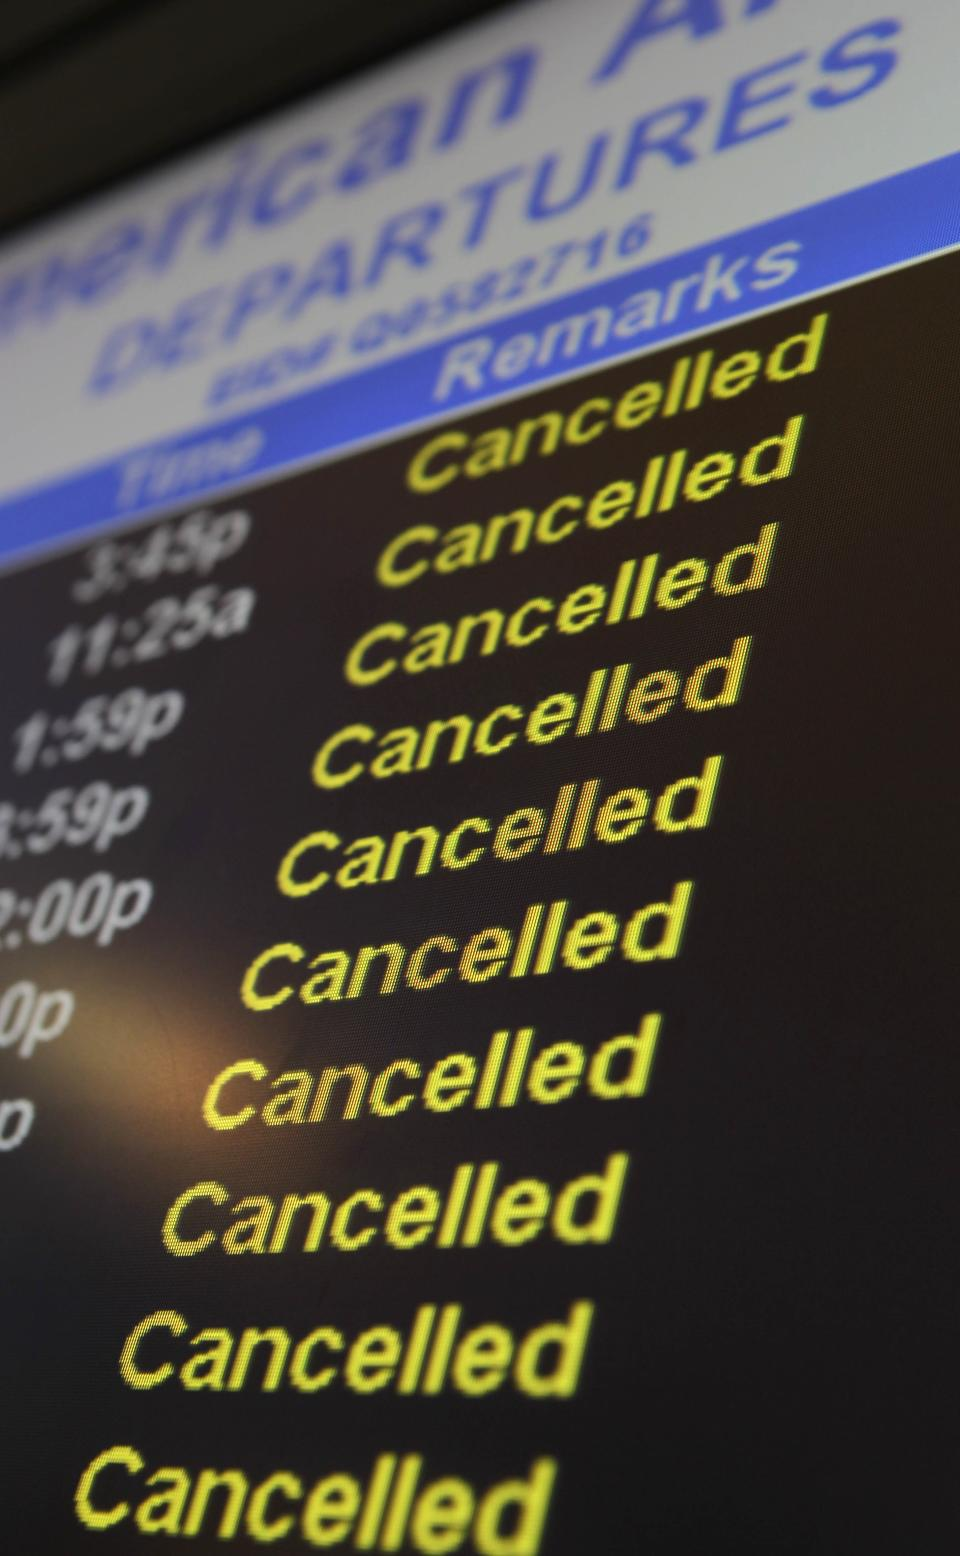 A list of canceled flights is displayed at John F. Kennedy International Airport in New York, Monday, Dec. 27, 2010.  (AP Photo/Seth Wenig)